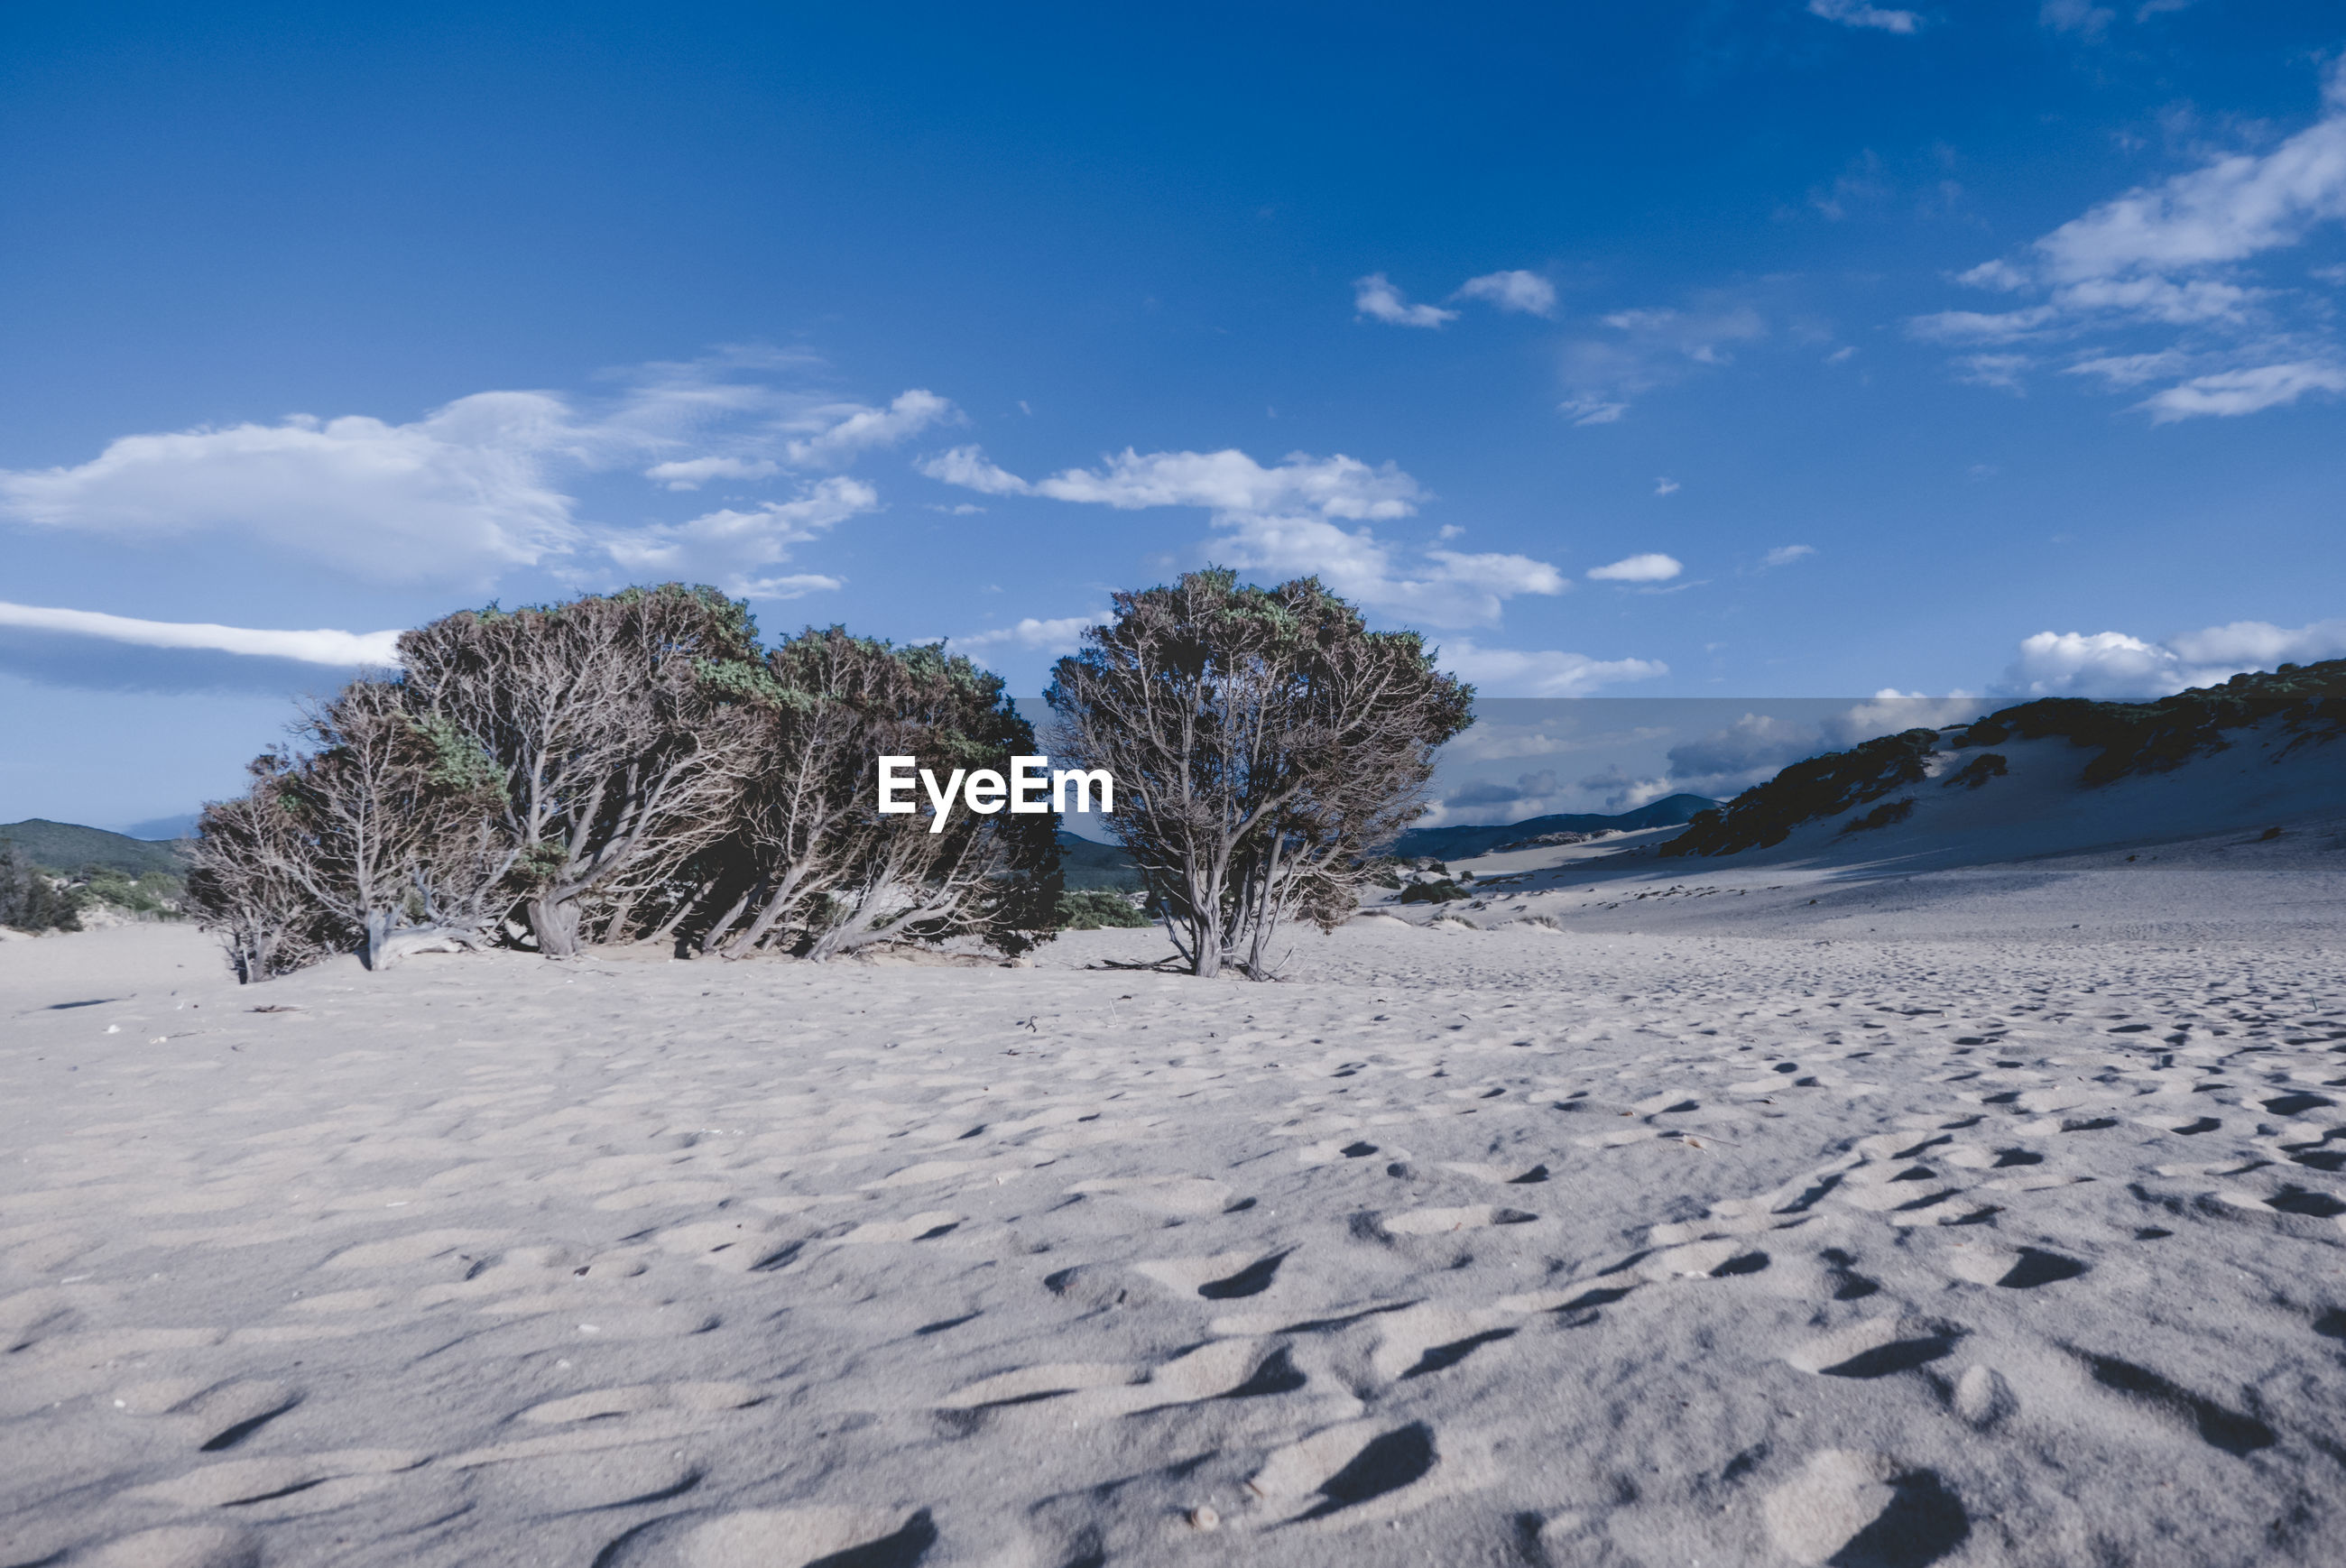 VIEW OF TREES ON SAND AGAINST BLUE SKY